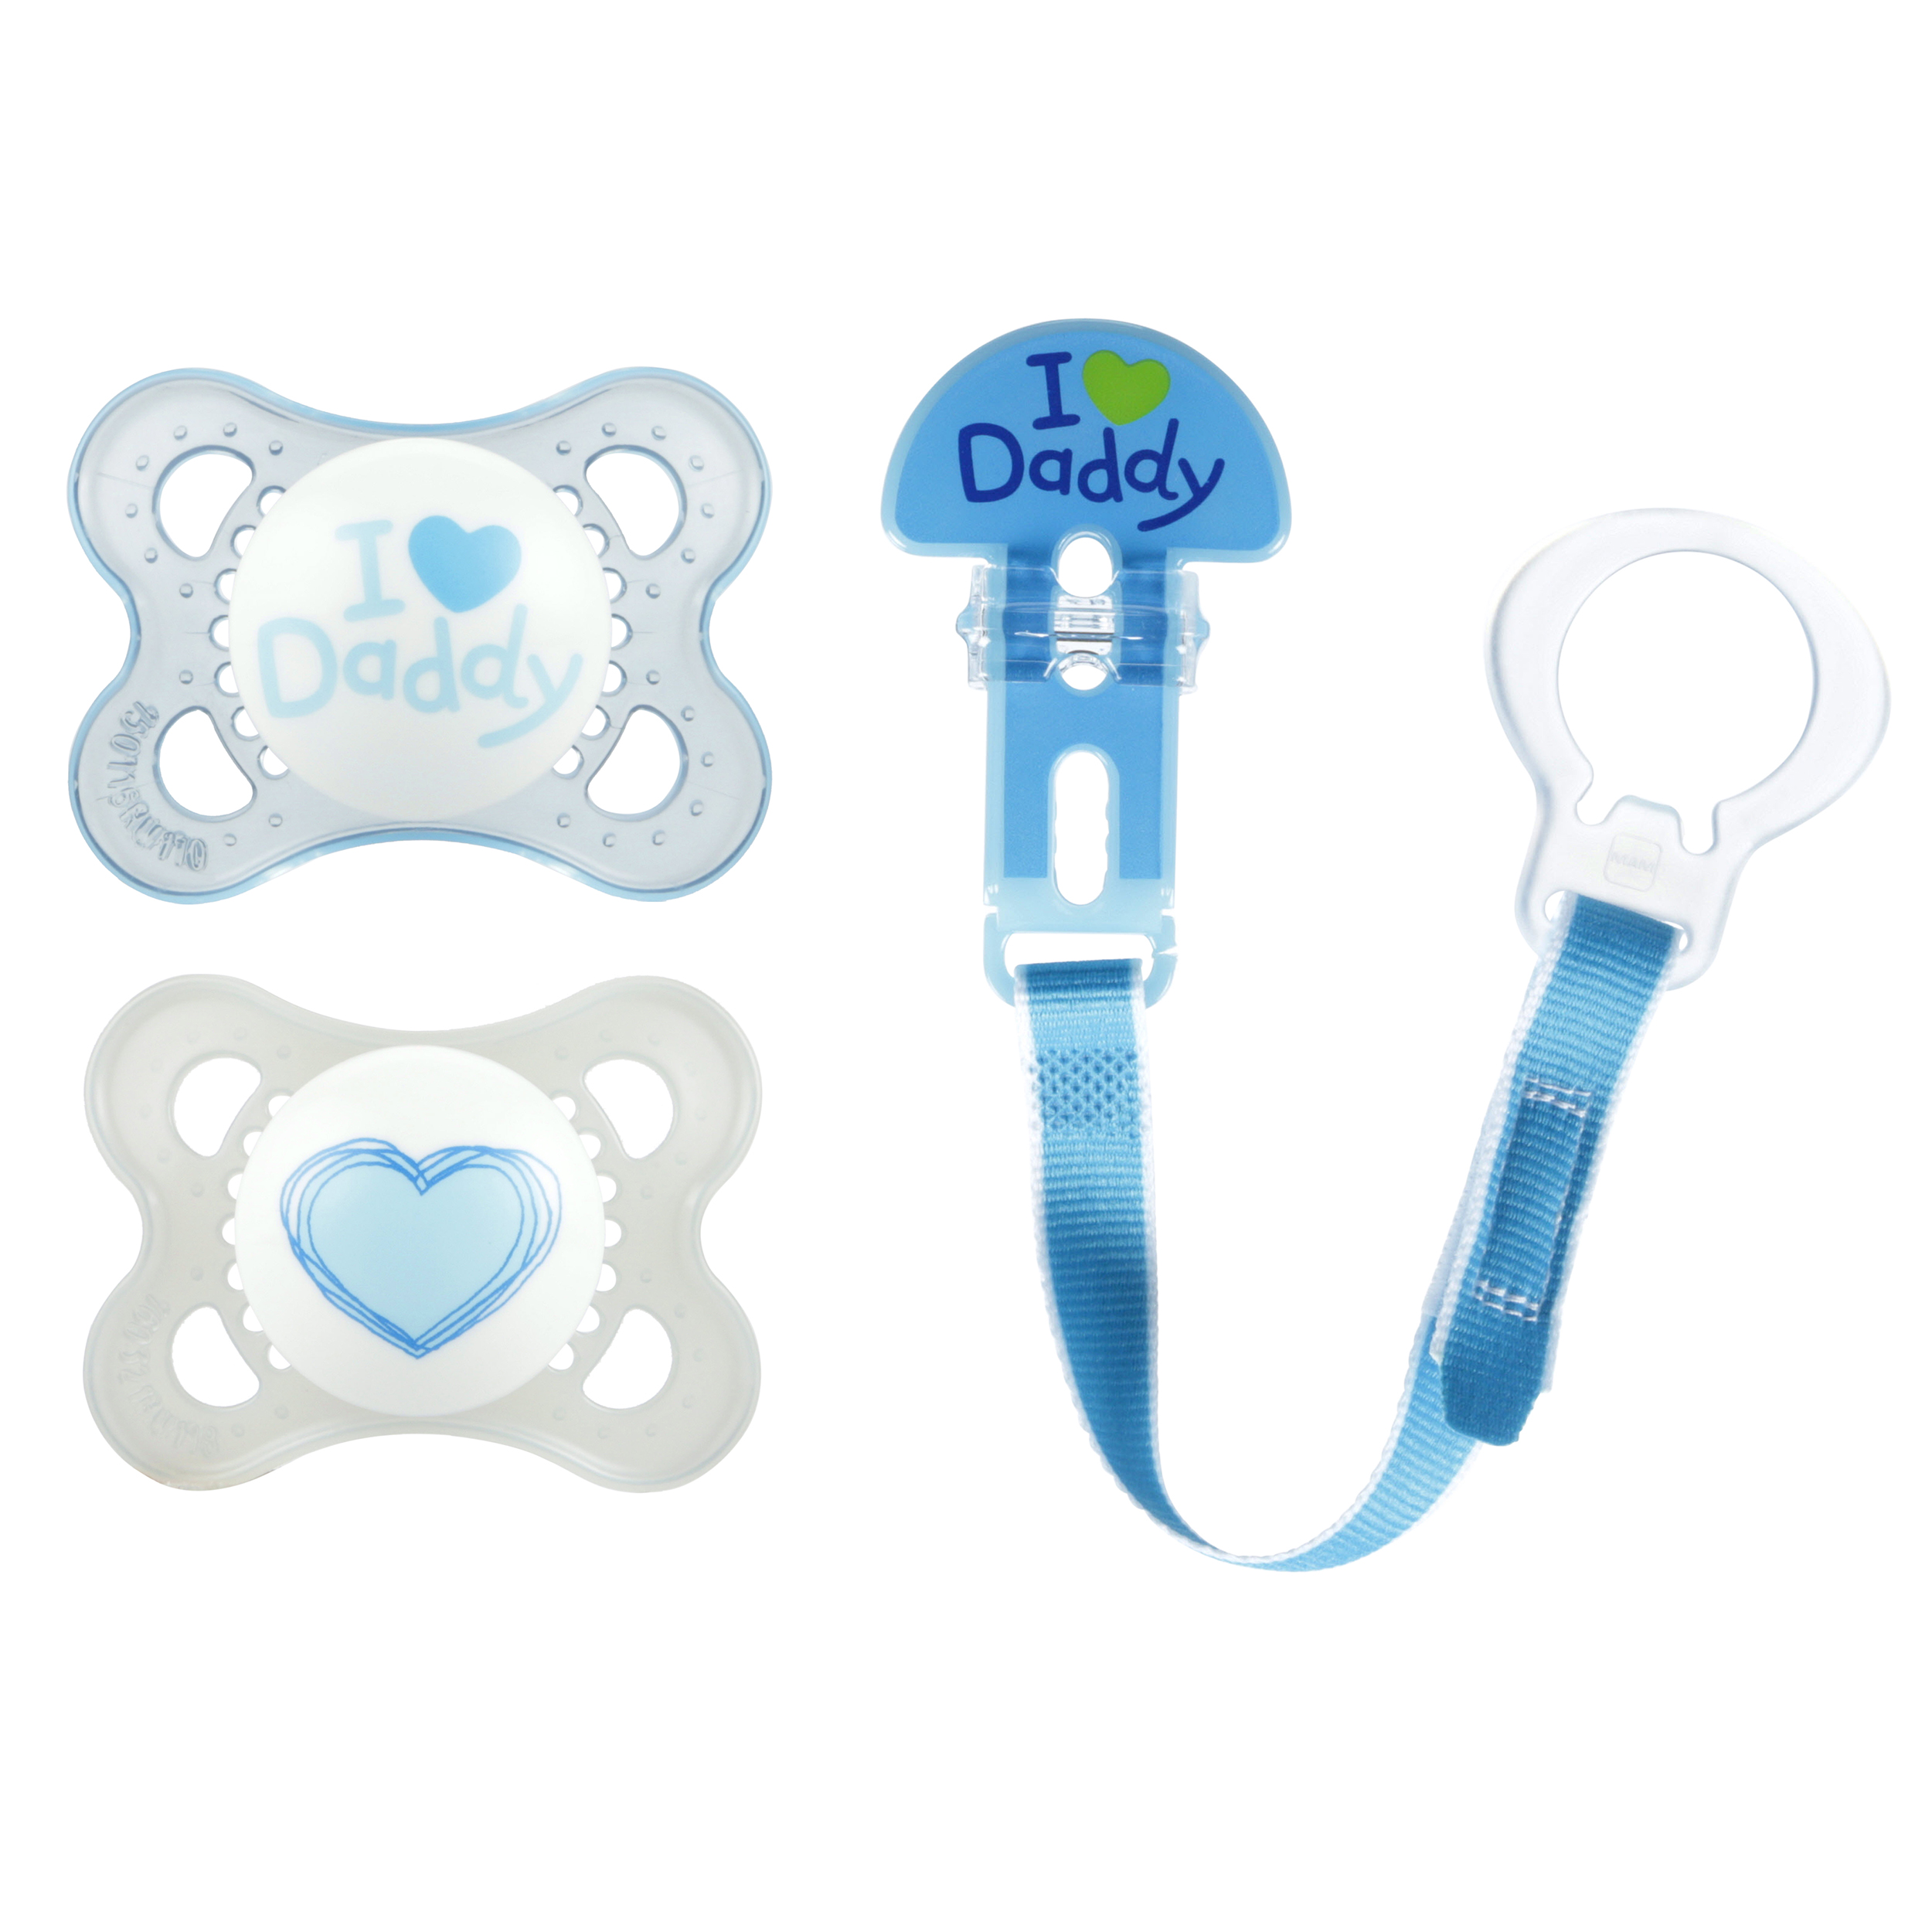 MAM Love & Affection Daddy Orthodontic Pacifier and Pacifier Clip, 0-6 Months, 2 pacifiers, 1 pacifier clip,... by MAM